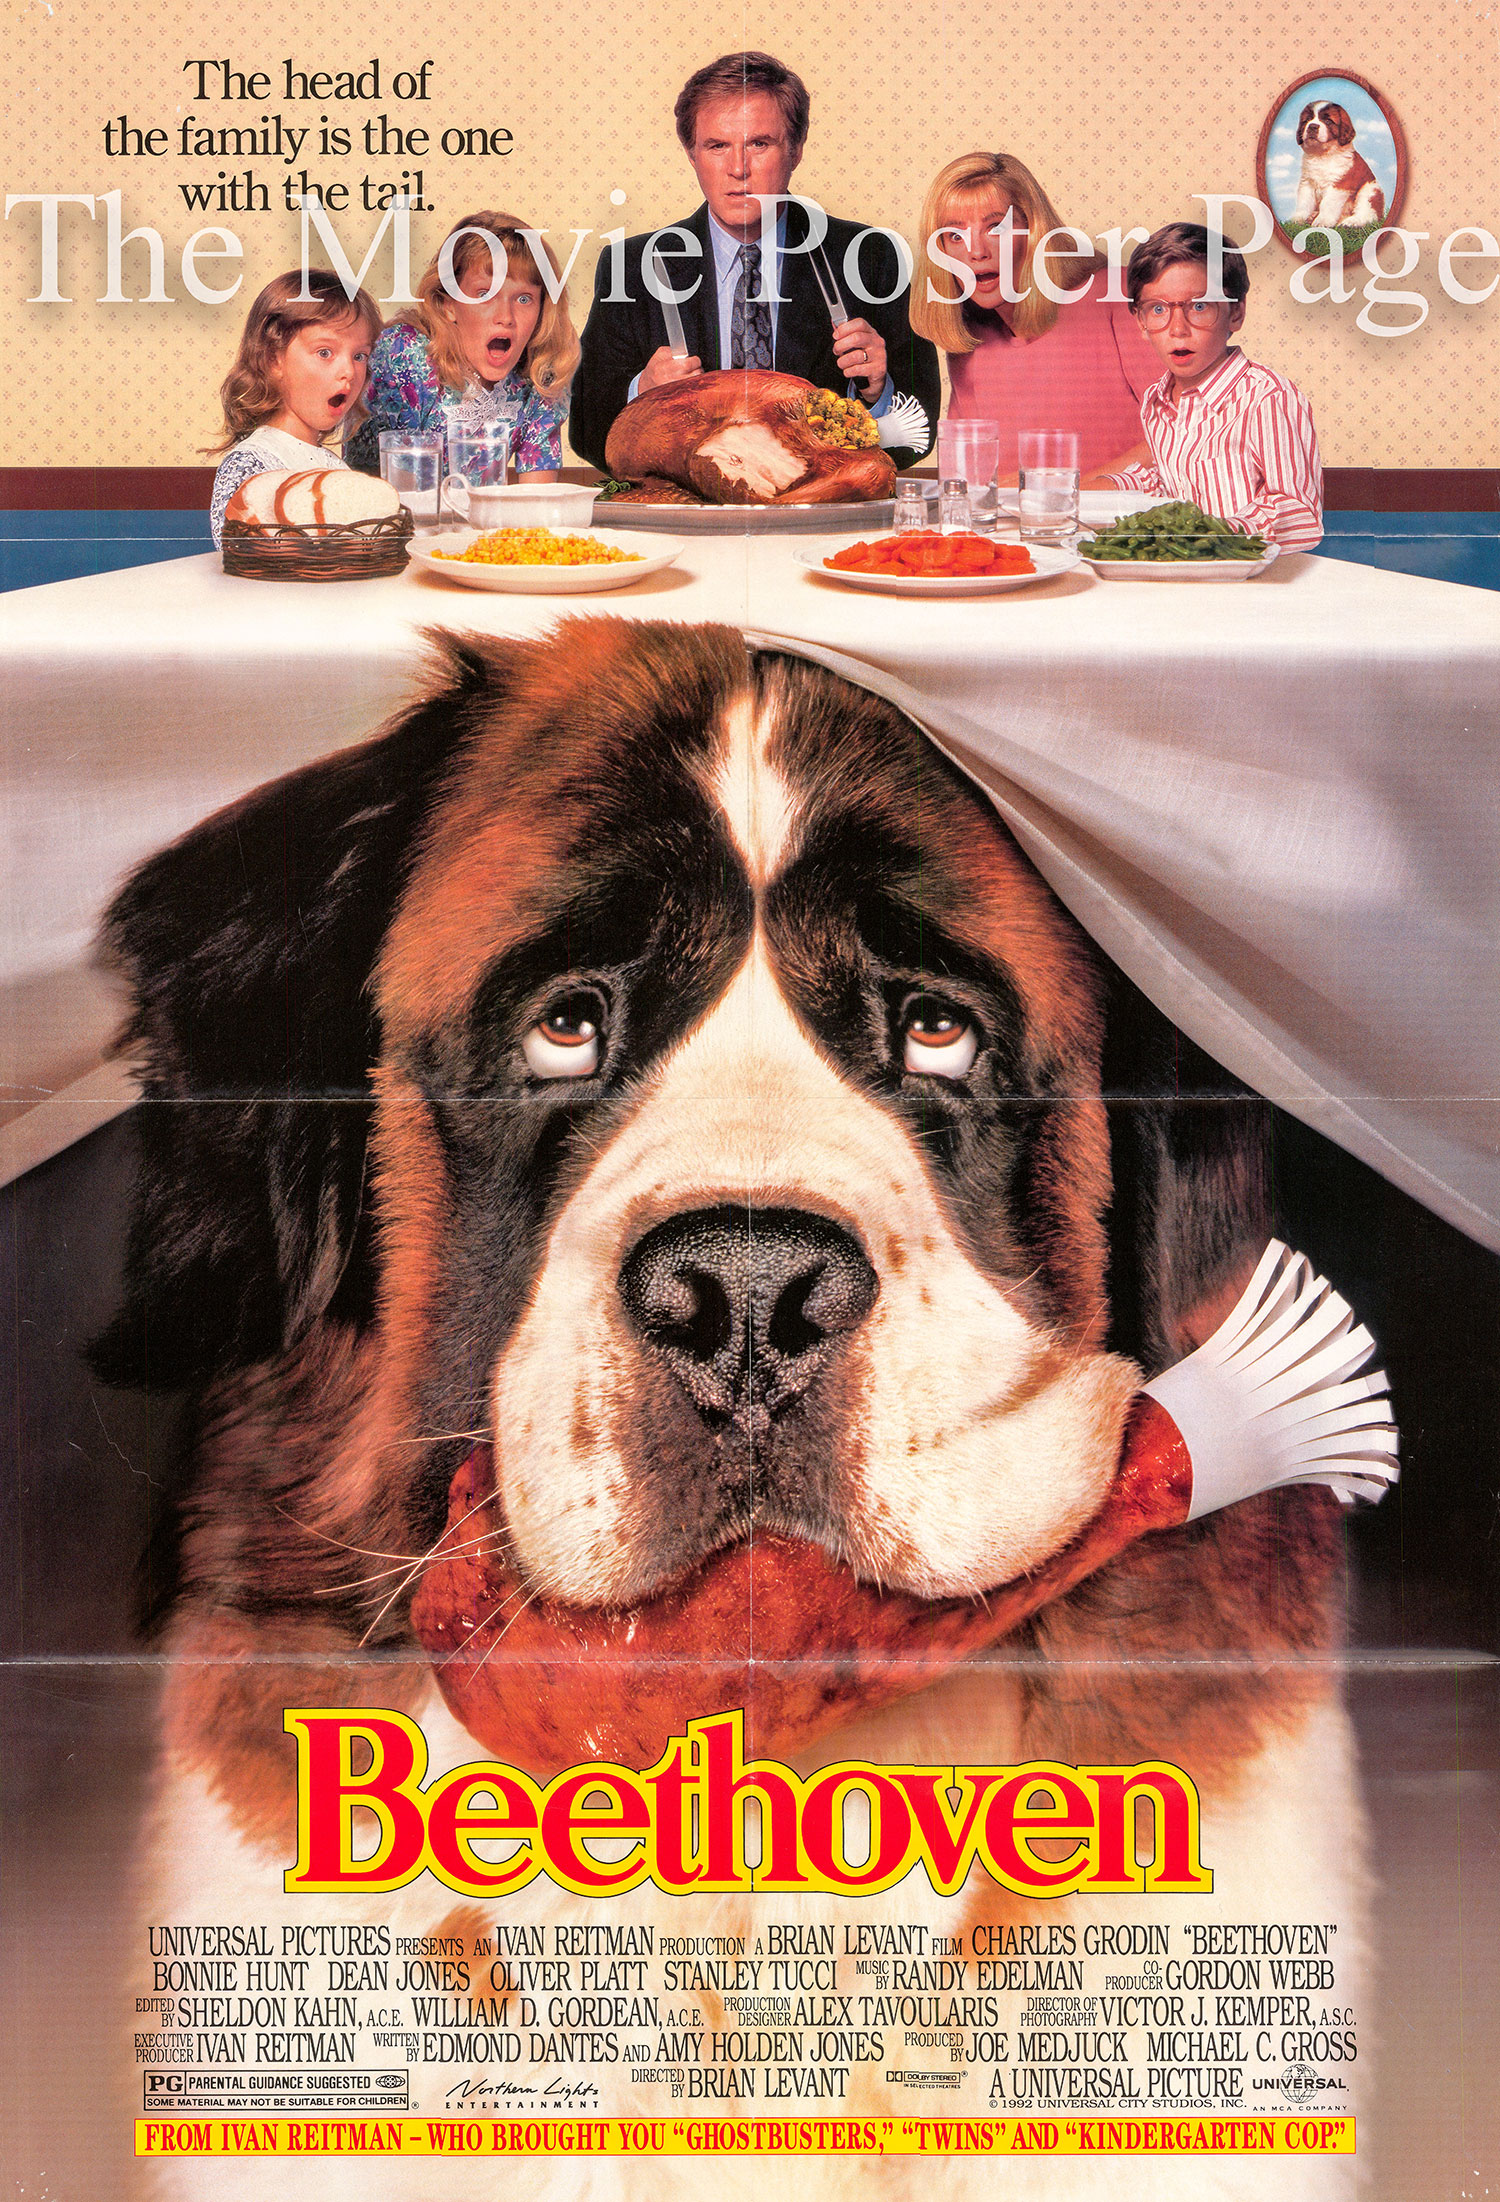 Pictured is a US one-sheet poster for the 1992 Brian Levant film Beethoven starring Charles Grodin.